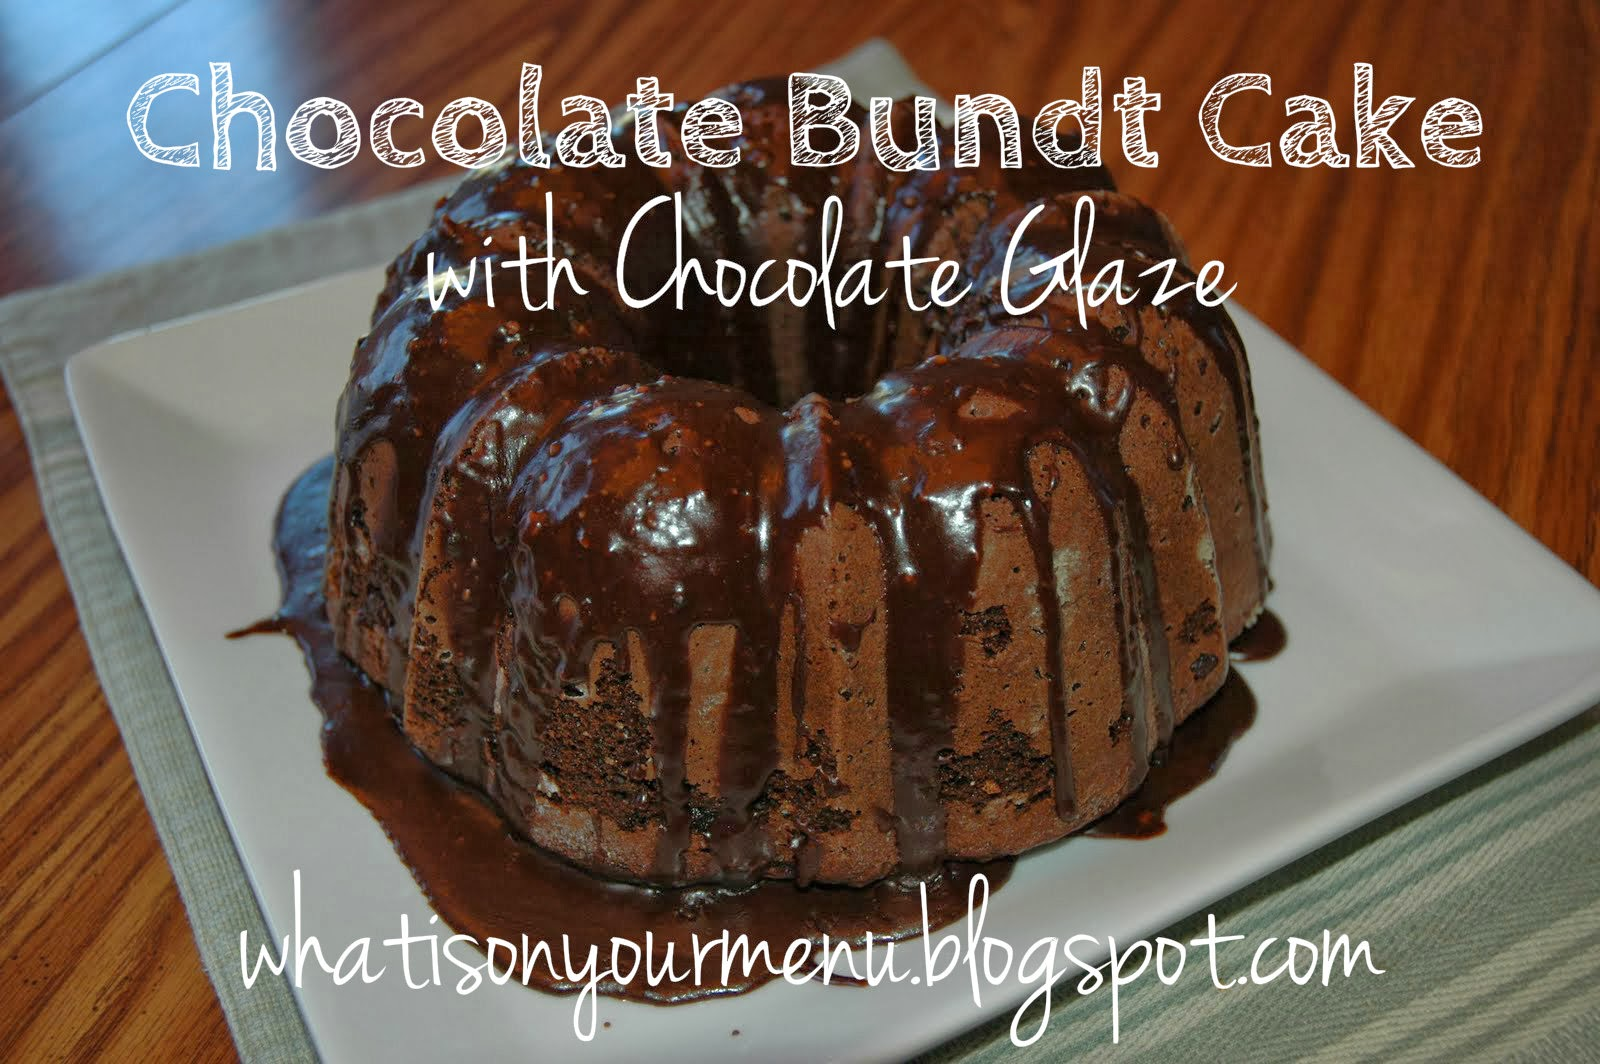 http://whatisonyourmenu.blogspot.com/2009/09/chocolate-bundt-cake-with-chocolate.html